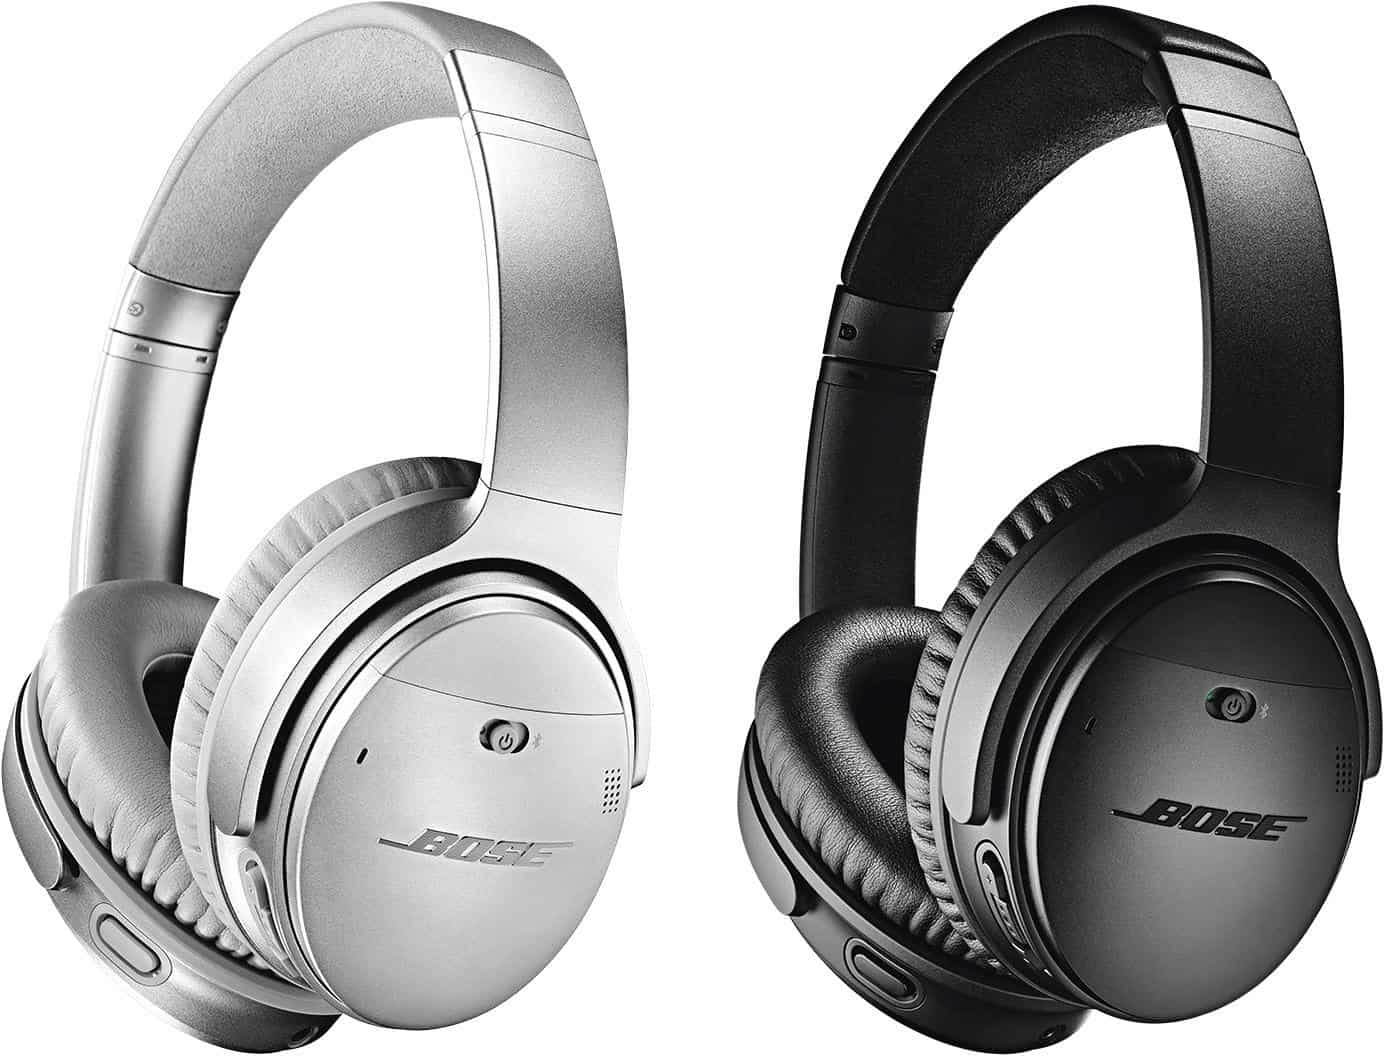 amazon Bose QC35 II reviews Bose QC35 II on amazon newest Bose QC35 II prices of Bose QC35 II Bose QC35 II deals best deals on Bose QC35 II buying a Bose QC35 II lastest Bose QC35 II what is a Bose QC35 II Bose QC35 II at amazon where to buy Bose QC35 II where can i you get a Bose QC35 II online purchase Bose QC35 II Bose QC35 II sale off Bose QC35 II discount cheapest Bose QC35 II Bose QC35 II for sale Bose QC35 II products Bose QC35 II tutorial Bose QC35 II specification Bose QC35 II features Bose QC35 II test Bose QC35 II series Bose QC35 II service manual Bose QC35 II instructions Bose QC35 II accessories bose qc35 ii australia bose qc35 ii amazon bose qc35 ii aptx bose qc35 ii app bose qc35 ii audio cable bose qc35 ii accessories bose qc35 ii apple bose qc35 ii android bose qc35 ii aptx support bose qc35 ii argos bose qc35 ii battery life bose qc35 ii best buy bose qc35 ii buttons bose qc35 ii battery replacement bose qc35 ii best price bose qc35 ii buy bose qc35 ii bluetooth version bose qc35 ii bluetooth pairing bose qc35 ii black bose qc35 ii box bose qc35 ii charging bose qc35 ii charge time bose qc35 ii connect to pc bose qc35 ii cable bose qc35 ii case bose qc35 ii canada bose qc35 ii connect to mac bose qc35 ii controls bose qc35 ii currys bose qc35 ii custom bose qc35 ii deals bose qc35 ii driver bose qc35 ii discount bose qc35 ii difference bose qc35 ii duty free bose qc35 ii dubai bose qc35 ii delay bose qc35 ii driver windows 10 bose qc35 ii driver for windows 7 bose qc35 ii david jones bose qc35 ii ebay bose qc35 ii equalizer bose qc35 ii ear pads bose qc35 ii equivalent bose qc35 ii egypt bose qc35 ii ear pressure bose qc35 ii firmware bose qc35 ii for gaming bose qc35 ii frequency response bose qc35 ii features bose qc35 ii fake bose qc35 ii for sale bose qc35 ii firmware 2.2.1 bose qc35 ii fiyat bose qc35 ii for gym bose qc35 ii for android bose qc35 ii giá bose qc35 ii google assistant bose qc35 ii google assistant iphone bose qc35 ii gaming bose qc35 ii gym bose qc35 ii google assistant not working bose qc35 ii gumtree bose qc35 ii good guys bose qc35 ii guide bose qc35 ii glasses bose qc35 ii instructions bose qc35 ii india bose qc35 ii iphone bose qc35 ii india price bose qc35 ii issues bose qc35 ii ireland bose qc35 ii iphone x bose qc35 ii in the box bose qc35 ii indonesia bose qc35 ii iphone google assistant bose qc35 ii john lewis bose qc35 ii jb hi fi bose qc35 ii japan price bose qc35 ii japan bose qc35 ii kaina bose qc35 ii kaufen bose qc35 ii kuwait bose qc35 ii kopen bose qc35 ii keeps disconnecting bose qc35 ii latest firmware bose qc35 ii latency bose qc35 ii low volume bose qc35 ii lowest price bose qc35 ii launch date bose qc35 ii laptop bose qc35 ii lag bose qc35 ii ldac bose qc35 ii lazada bose qc35 ii linux bose qc35 ii manual bose qc35 ii microphone bose qc35 ii malaysia bose qc35 ii myer bose qc35 ii music share bose qc35 ii macbook pro bose qc35 ii multiple devices bose qc35 ii microphone quality bose qc35 ii mac bose qc35 ii mute bose qc35 ii nz bose qc35 ii not connecting bose qc35 ii noise cancelling bose qc35 ii nfc bose qc35 ii noise cancelling button bose qc35 ii noise cancelling settings bose qc35 ii noise cancelling headphones bose qc35 ii not charging bose qc35 ii noise cancelling level bose qc35 ii new firmware bose qc35 ii officeworks bose qc35 ii ozbargain bose qc35 ii on sale bose qc35 ii owners manual bose qc35 ii offers bose qc35 ii ohm bose qc35 ii on plane bose qc35 ii open box bose qc35 ii on pc bose qc35 ii on ps4 bose qc35 ii price bose qc35 ii ps4 bose qc35 ii prisjakt bose qc35 ii pairing bose qc35 ii price australia bose qc35 ii pairing mode bose qc35 ii problems bose qc35 ii pricespy bose qc35 ii price in india bose qc35 ii philippines bose qc35 ii quietcomfort 35 series 2 wireless noise cancelling headphones black bose qc35 ii quietcomfort 2 bose qc35 ii quietcomfort 35 series 2 bose qc35 ii quietcomfort bose qc35 ii quick charge bose qc35 ii quietcomfort 35 bose qc35 ii quietcomfort noise cancelling wireless bose qc35 ii quietcomfort noise cancelling bose qc35 ii quietcomfort 35 series 2 wireless noise cancelling headphones bose qc35 ii qatar bose qc35 ii review bose qc35 ii release date bose qc35 ii reddit bose qc35 ii reset bose qc35 ii review reddit bose qc35 ii range bose qc35 ii release bose qc35 ii rain bose qc35 ii running bose qc35 ii rtings bose qc35 ii sale bose qc35 ii specs bose qc35 ii singapore bose qc35 ii silver bose qc35 ii siri bose qc35 ii sound quality bose qc35 ii skins bose qc35 ii specifications bose qc35 ii setup bose qc35 ii software bose qc35 ii target bose qc35 ii teardown bose qc35 ii thailand bose qc35 ii the verge bose qc35 ii tips and tricks bose qc35 ii tech specs bose qc35 ii test bose qc35 ii transferring firmware bose qc35 ii tweakers bose qc35 ii turn off noise cancelling bose qc35 ii update bose qc35 ii uk bose qc35 ii unboxing bose qc35 ii usa bose qc35 ii user manual bose qc35 ii us price bose qc35 ii usa price bose qc35 ii usb c bose qc35 ii us bose qc35 ii used bose qc35 ii vs sony 1000xm2 bose qc35 ii vs qc35 bose qc35 ii vs beats studio 3 bose qc35 ii vs qc25 bose qc35 ii vs sony 1000xm2 reddit bose qc35 ii vs sony wh-1000x bose qc35 ii volume bose qc35 ii vs b&w px bose qc35 ii vs sennheiser bose qc35 ii vs soundlink ii bose qc35 ii wireless headphones bose qc35 ii windows 10 bose qc35 ii weight bose qc35 ii warranty bose qc35 ii windows 7 driver bose qc35 ii wired bose qc35 ii windows 7 bose qc35 ii wireless bose qc35 ii worth it bose qc35 ii wiki bose qc35 ii xbox one bose qc35 ii youtube bose qc35 ii zap bose qc35 ii 2.5.1 bose qc35 ii 2.2.1 bose qc35 ii 2018 bose qc35 ii 3.5mm